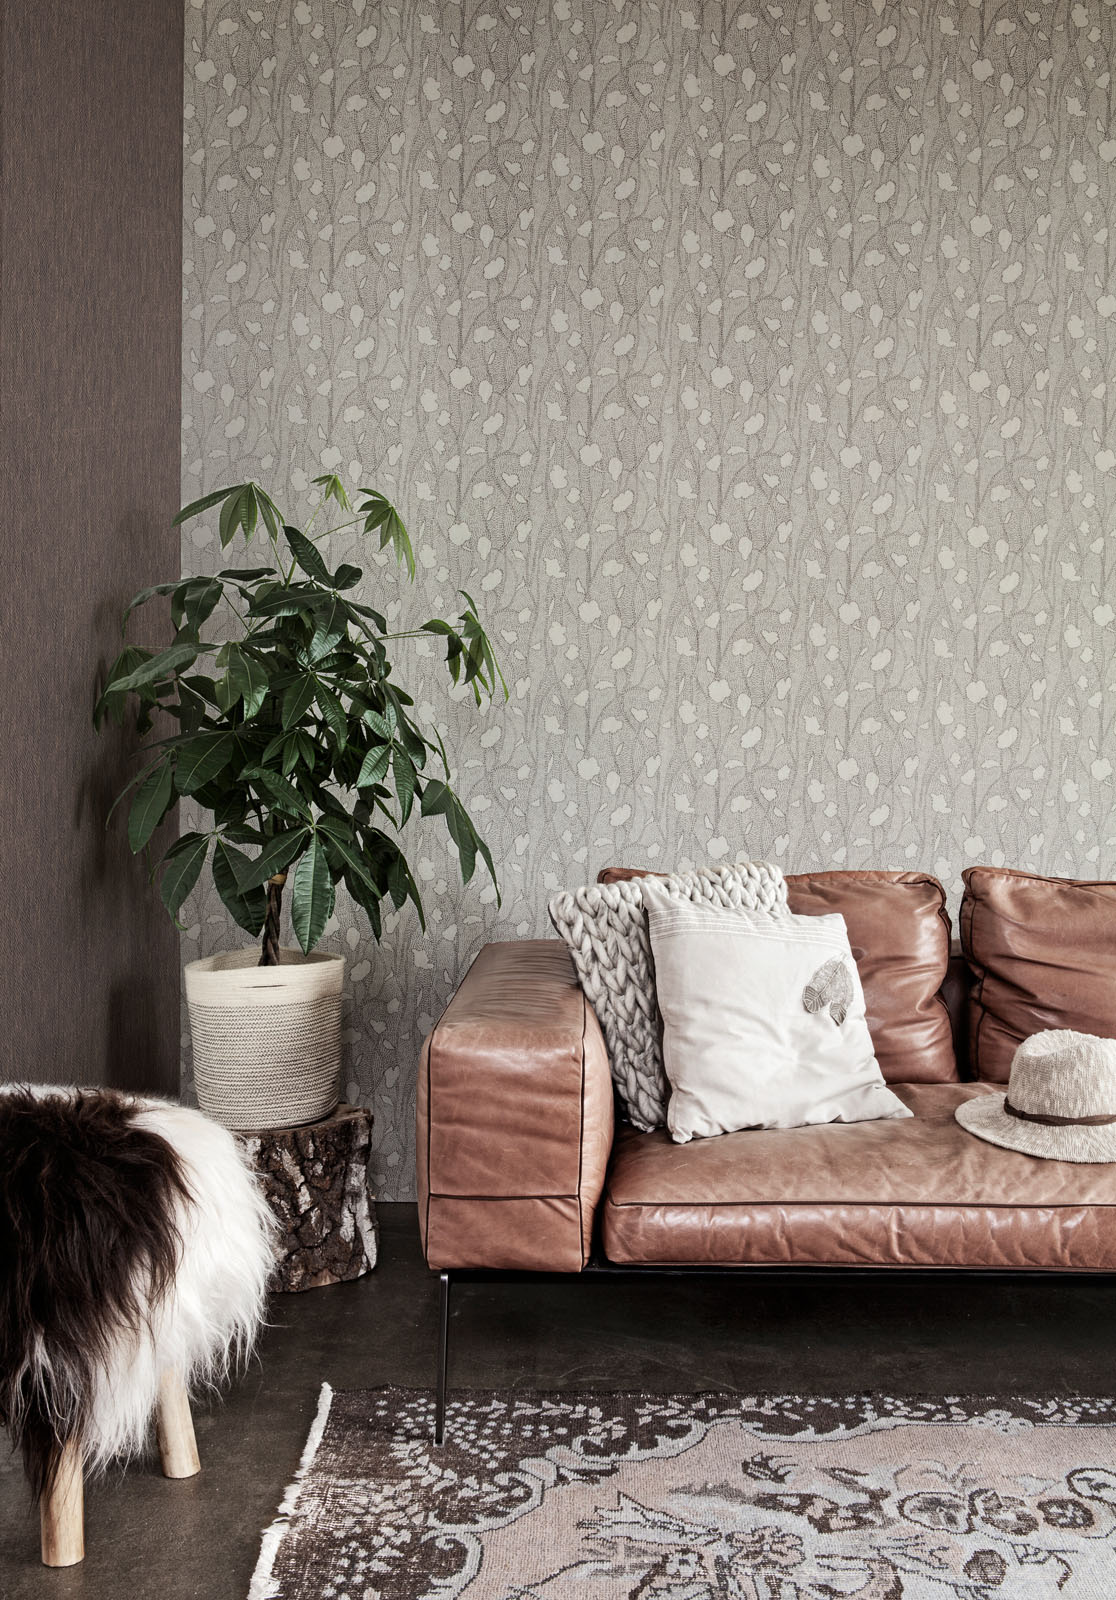 nomadics by bn wallcoverings | alvaluz.com